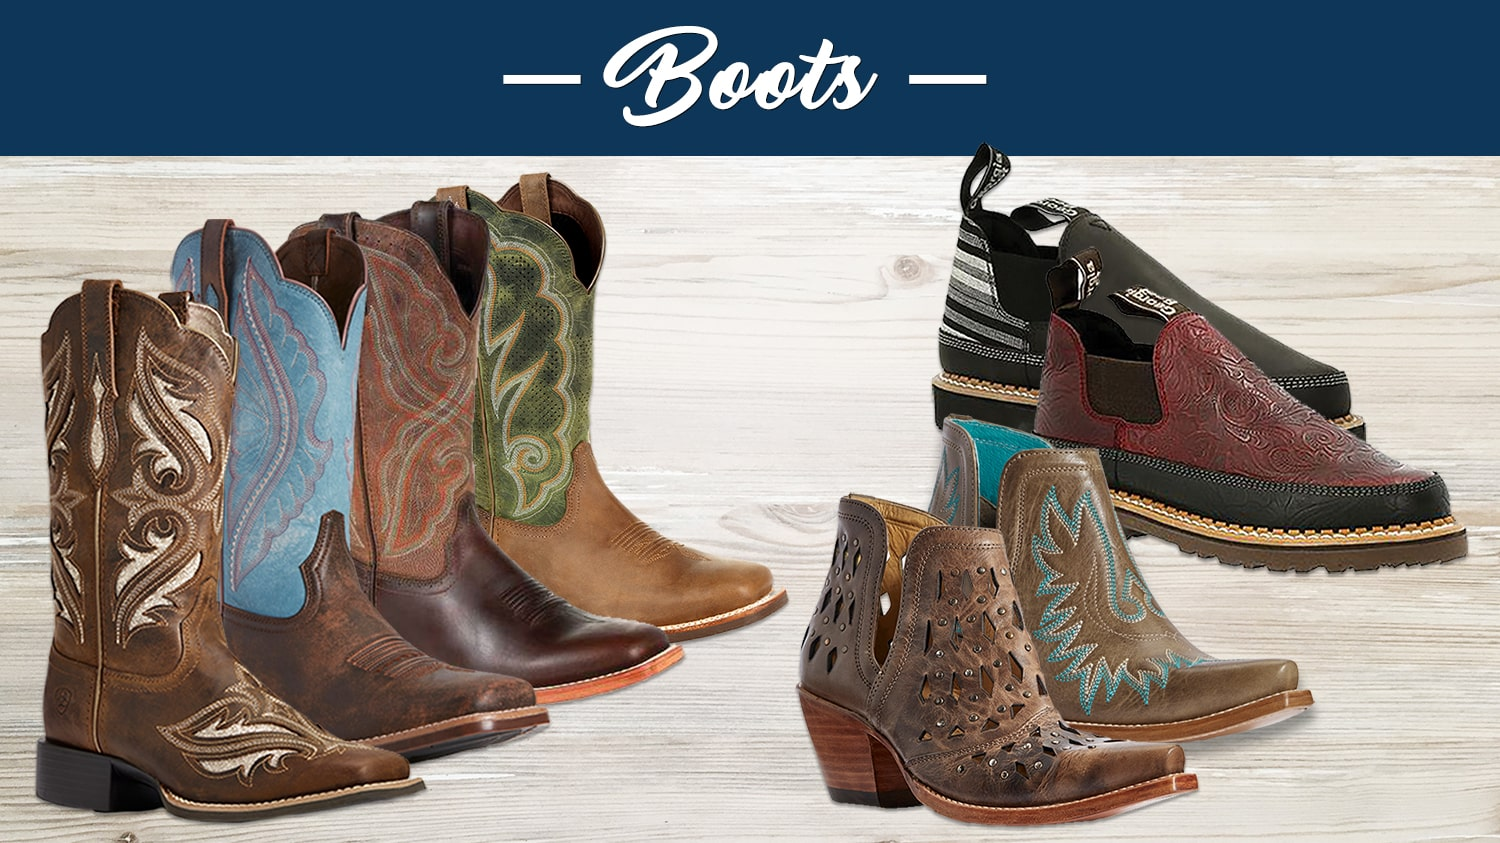 New Ladies Fall Styles Boots